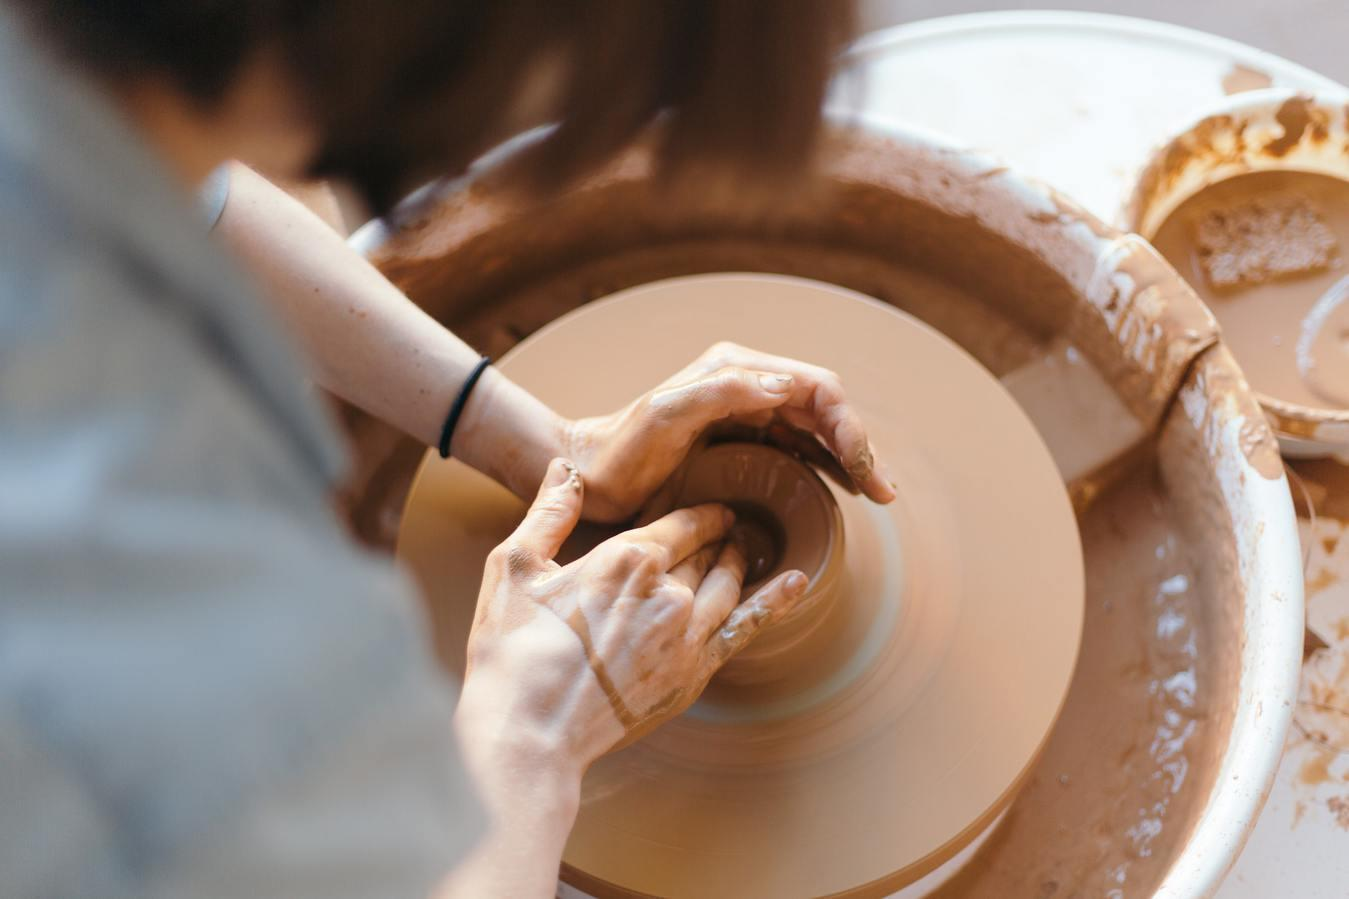 Handmade pottery and ceramics products being made by a person